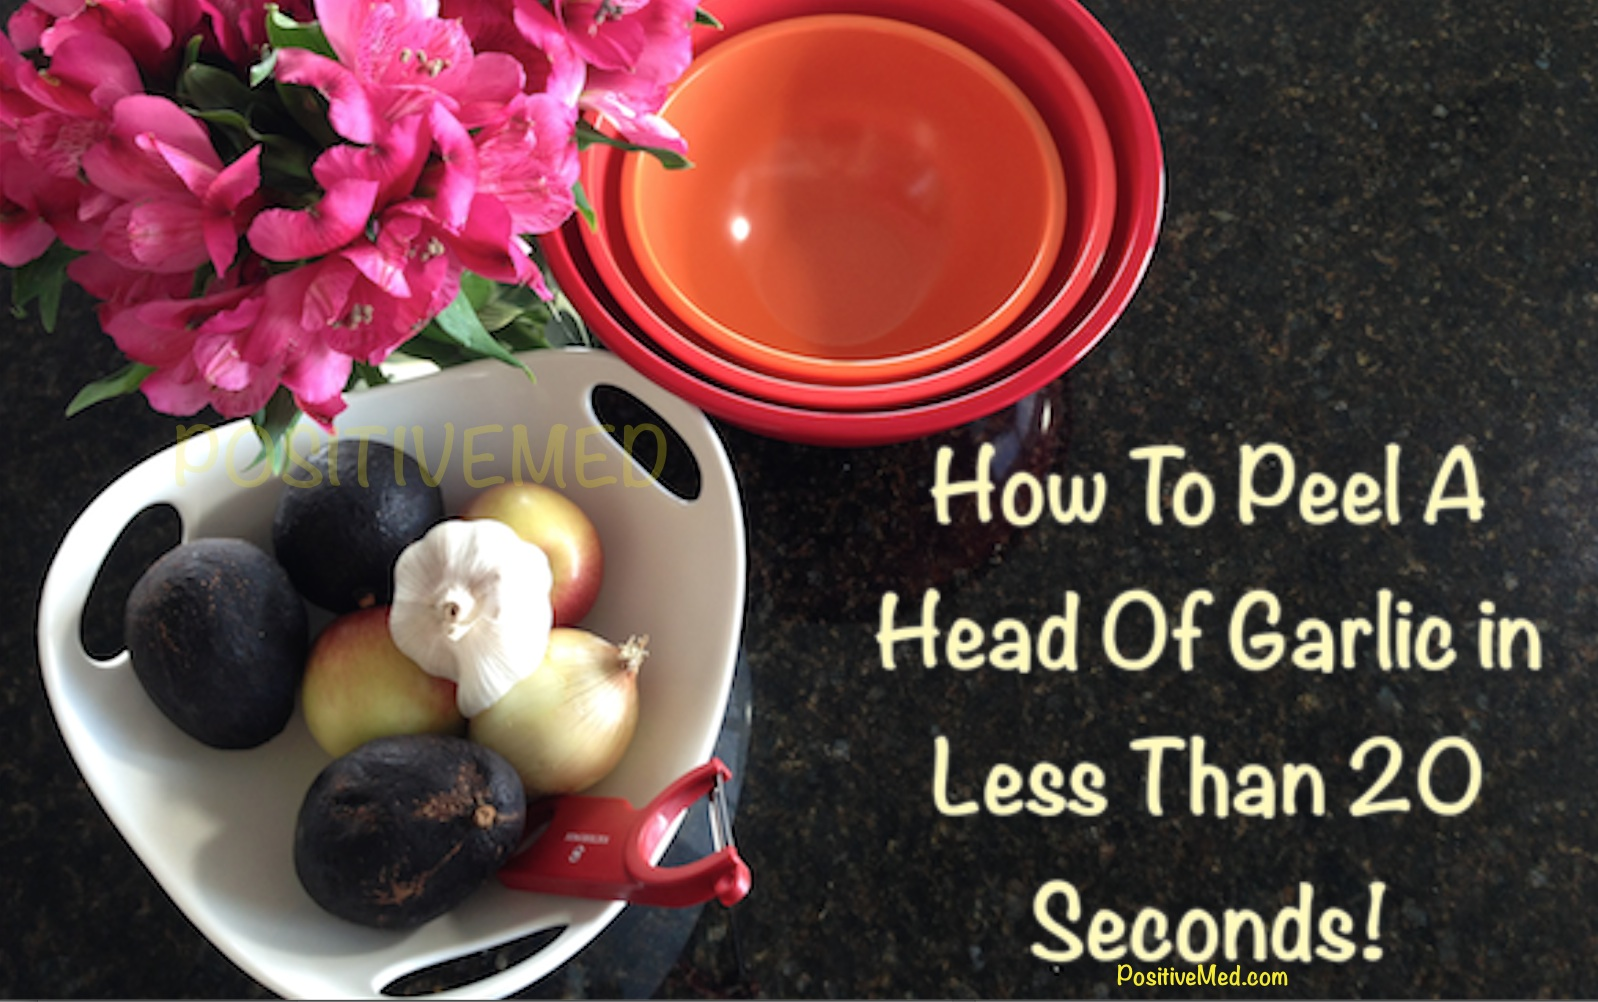 How To Peel A Head Of Garlic In Less Than 20 Seconds